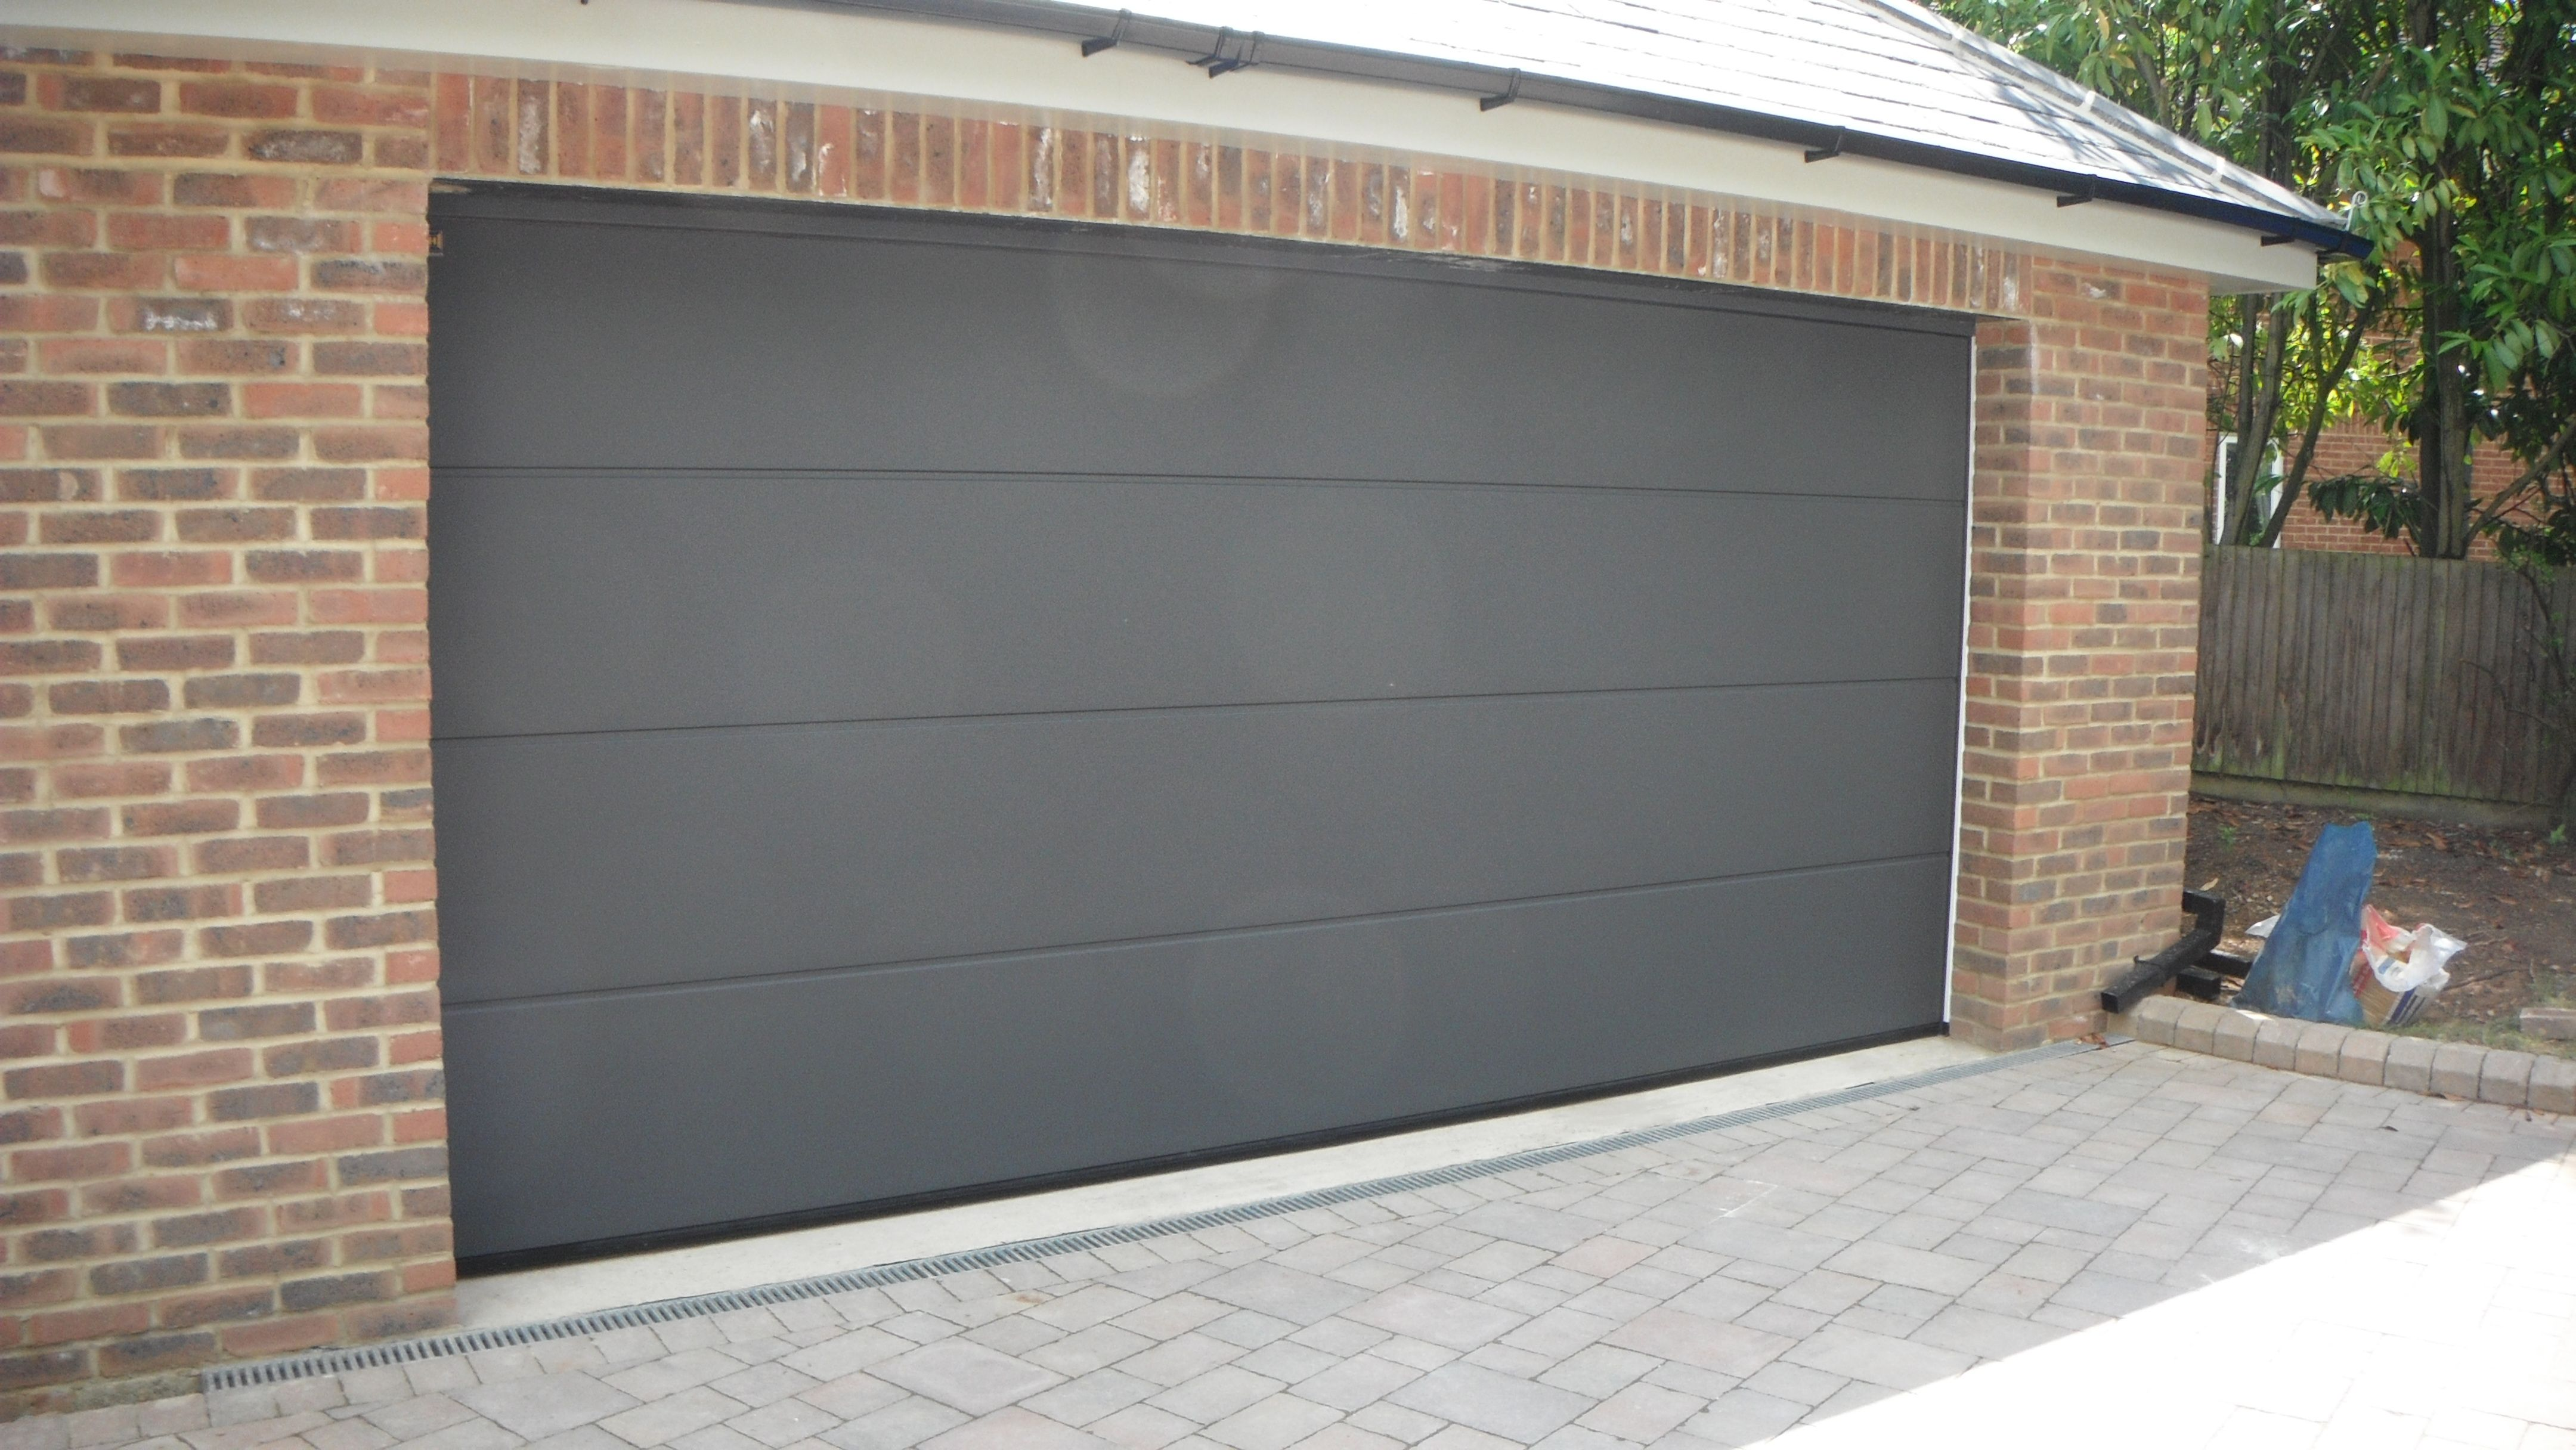 Sectional garage door - Find This Pin And More On Hormann Sectional Garage Doors